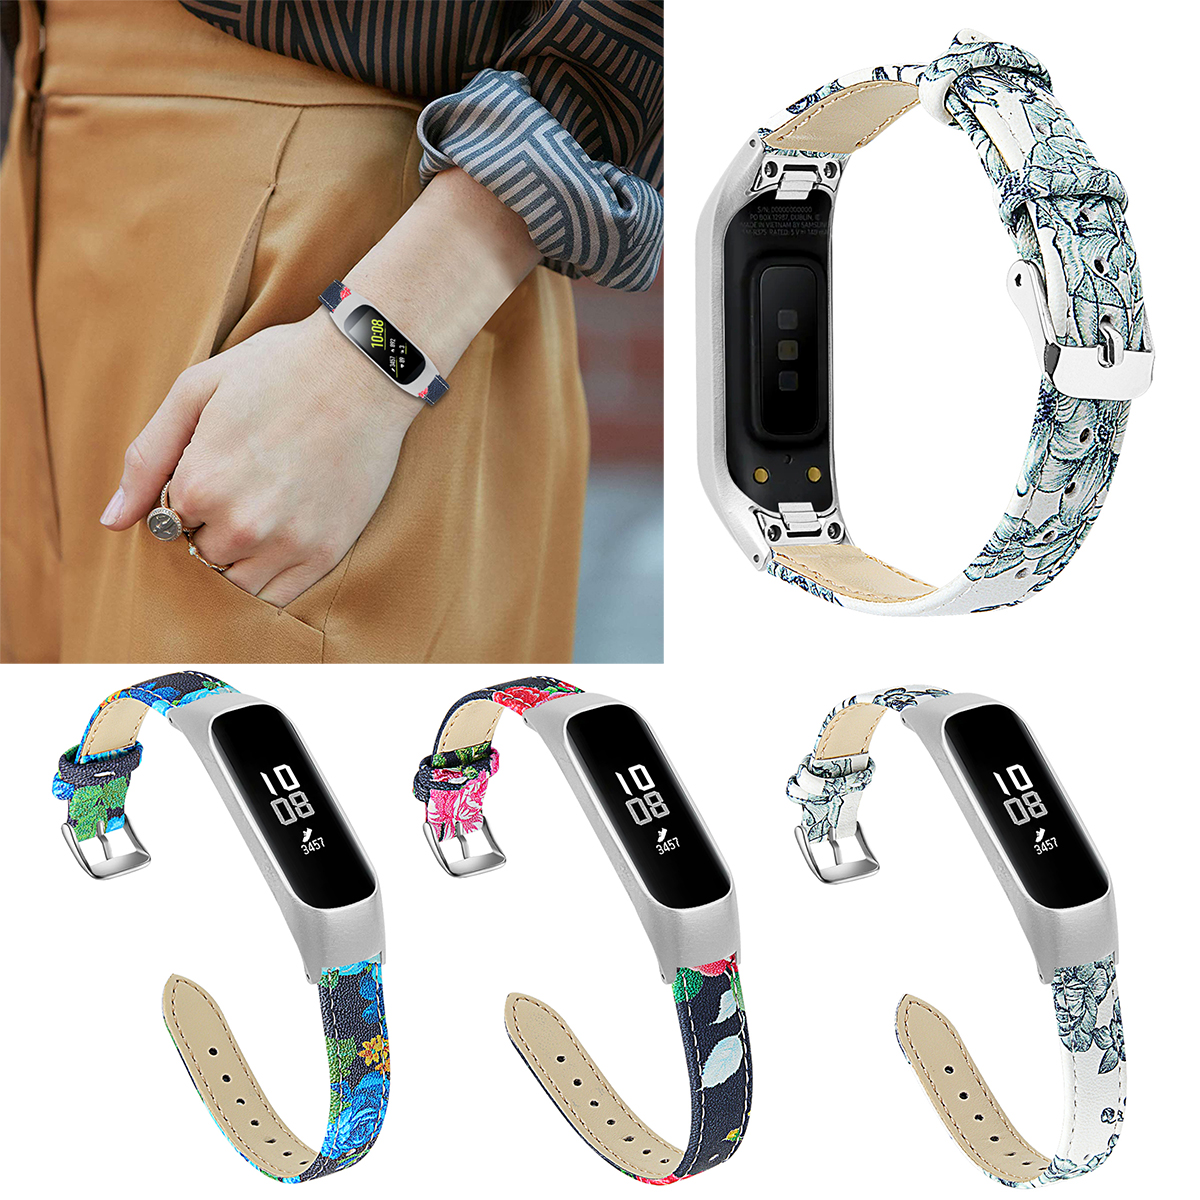 New Stainless Steel Watch Strap Wrist Band Strap For Samsung Galaxy Fit-e R375 Smart Bracelet Replacement Watch Band Strap